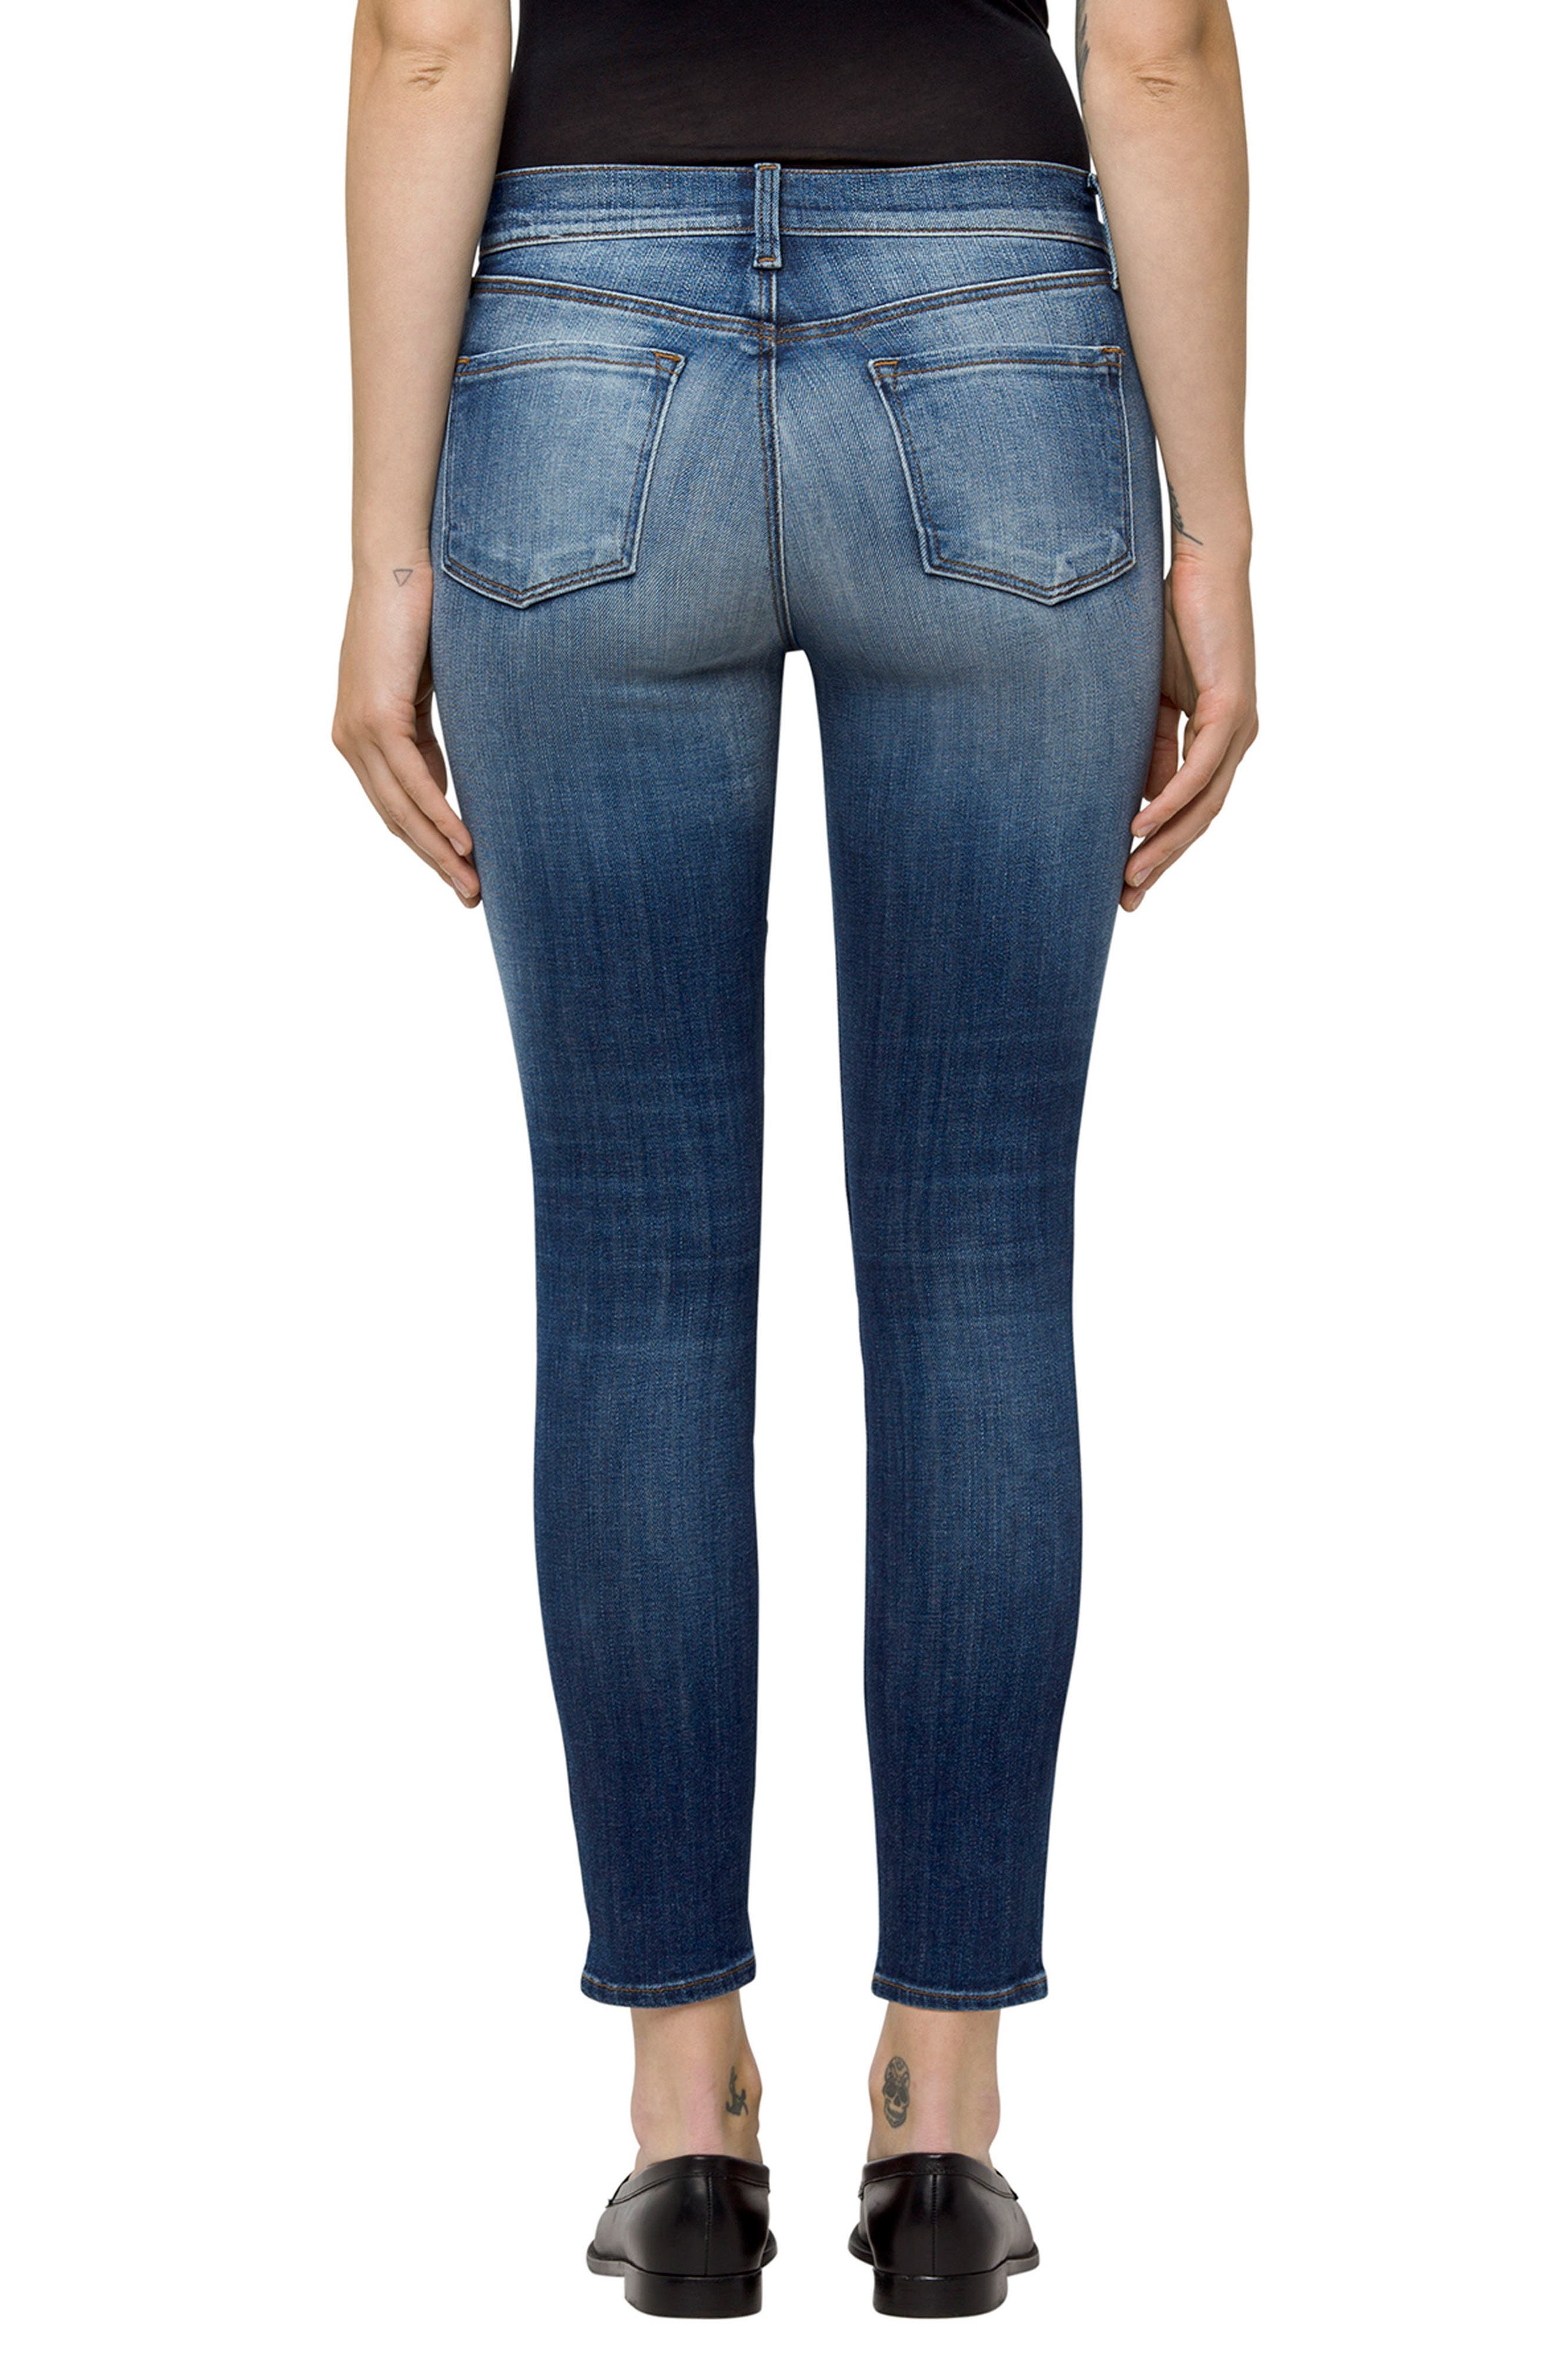 835 Crop Skinny Jeans,                             Alternate thumbnail 2, color,                             Jasper Patched